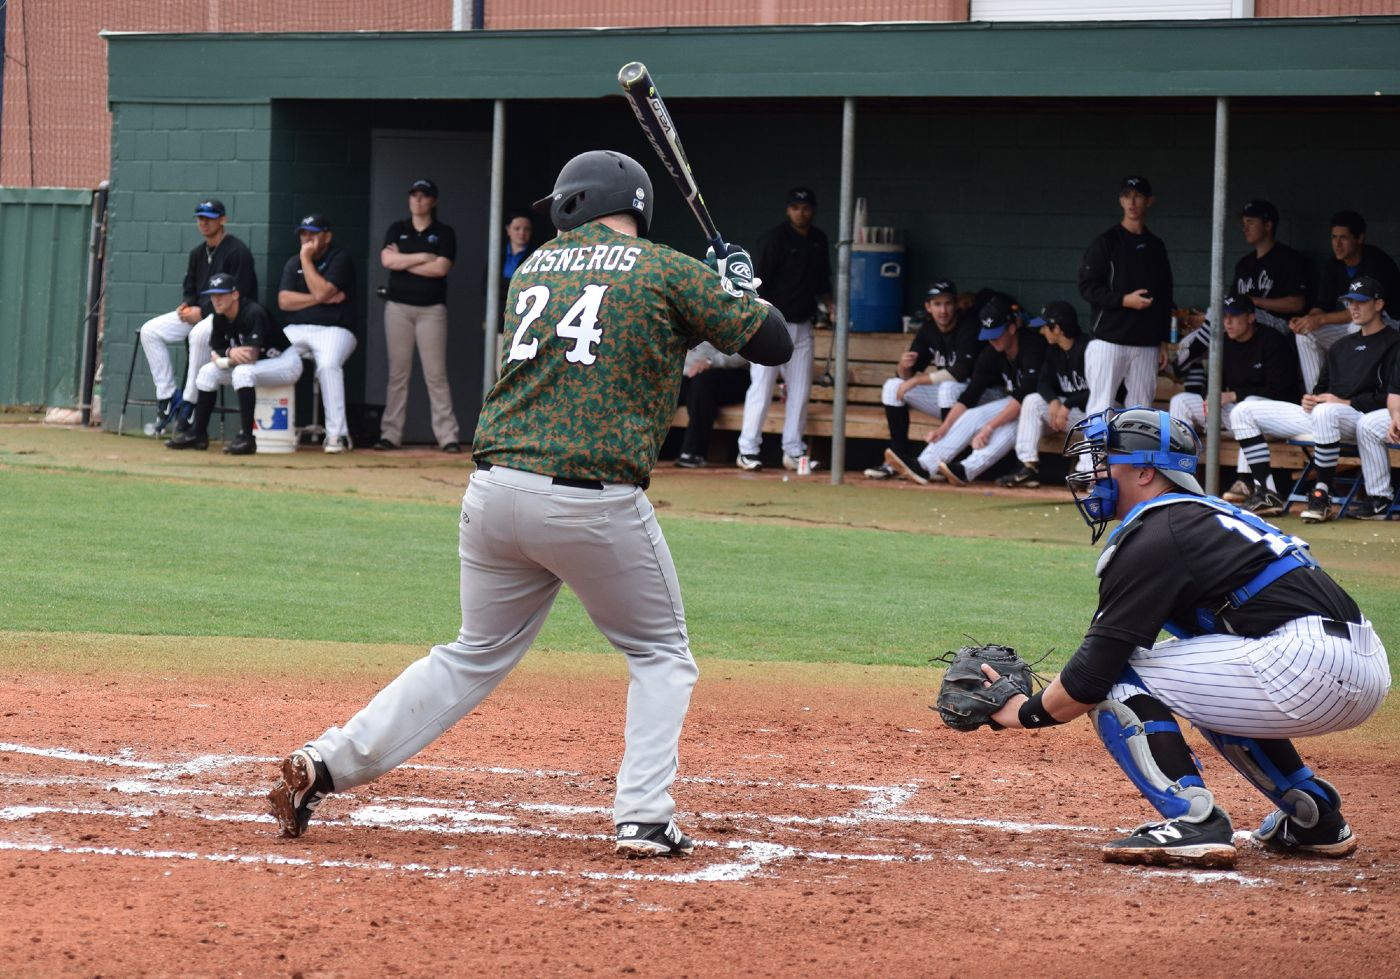 Beavers take day one sweep with emotional walk-off win